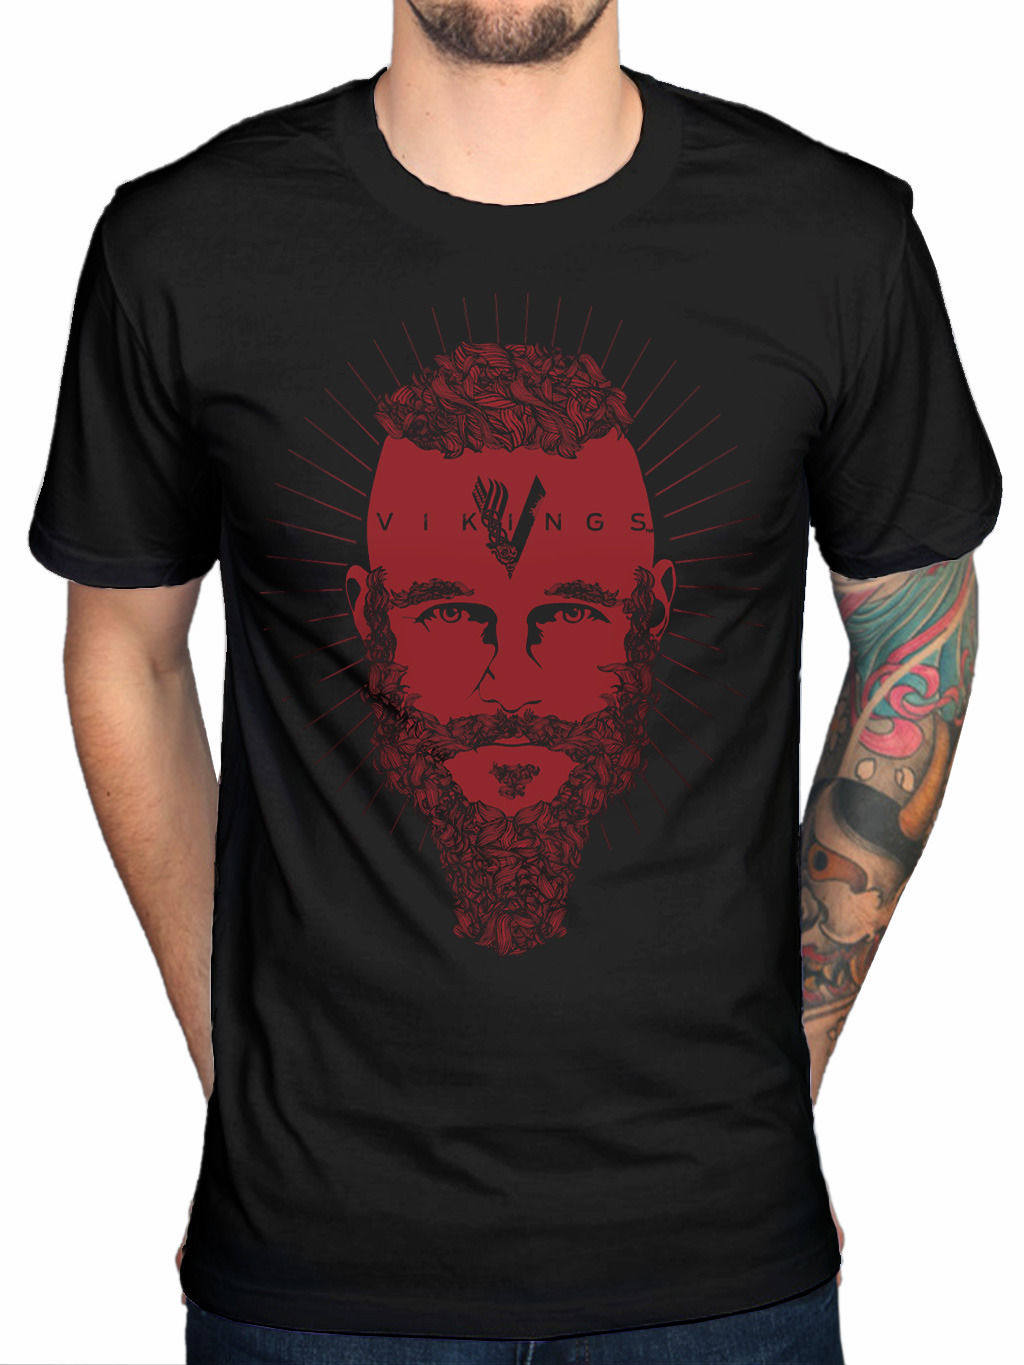 Official Vikings Ragnar Face T-Shirt TV Series History Channel Fan Merchandise Top Quality 2018 New Brand MenS T Shirt